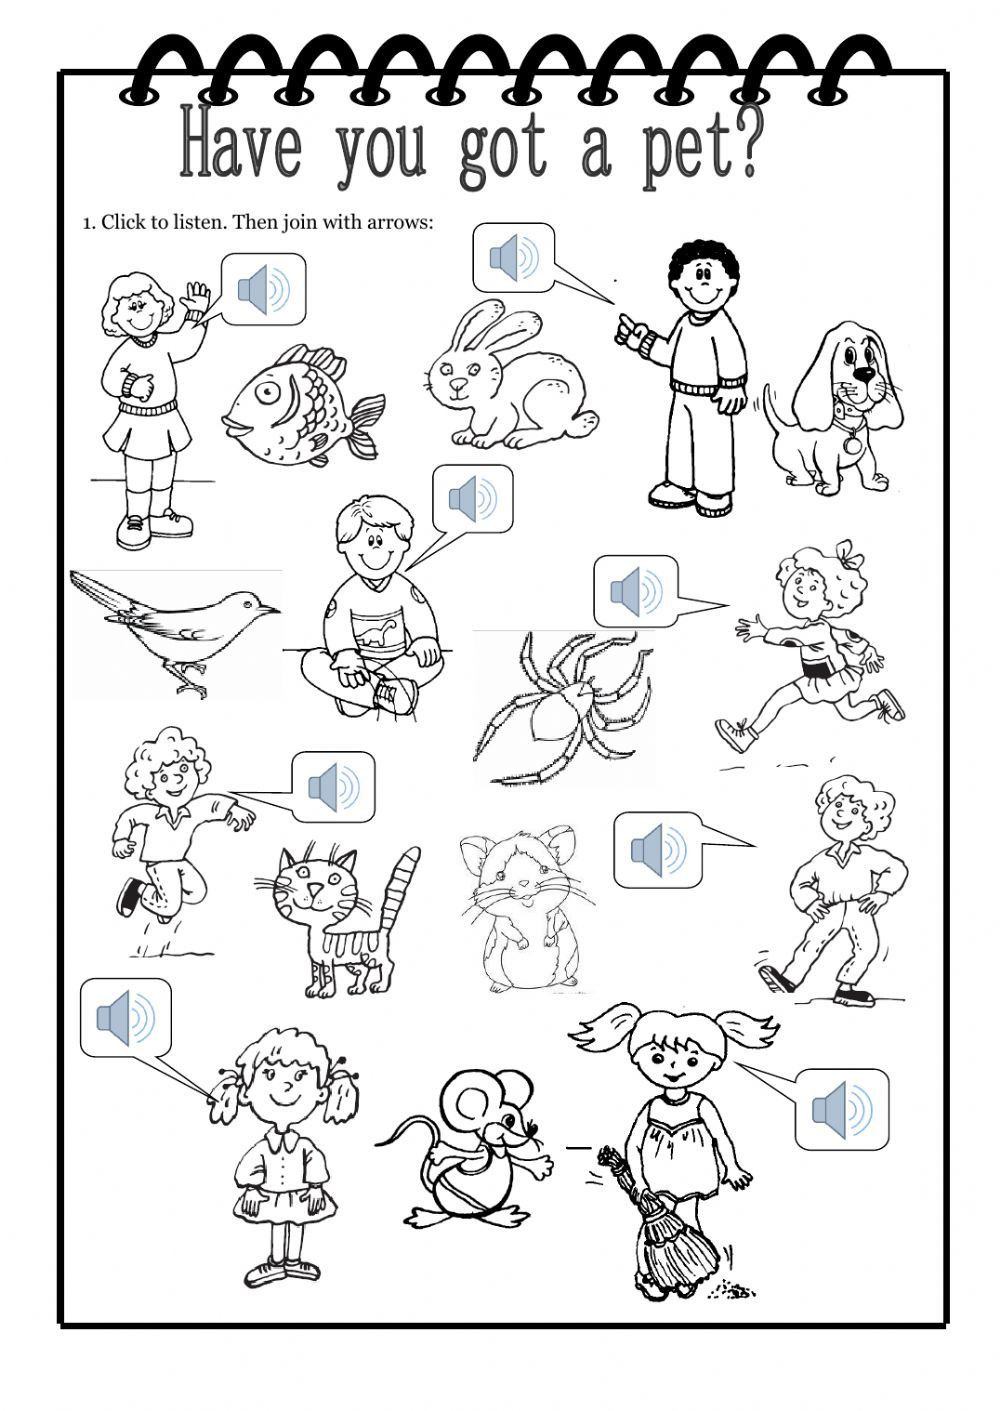 The animals interactive and downloadable worksheet. Check